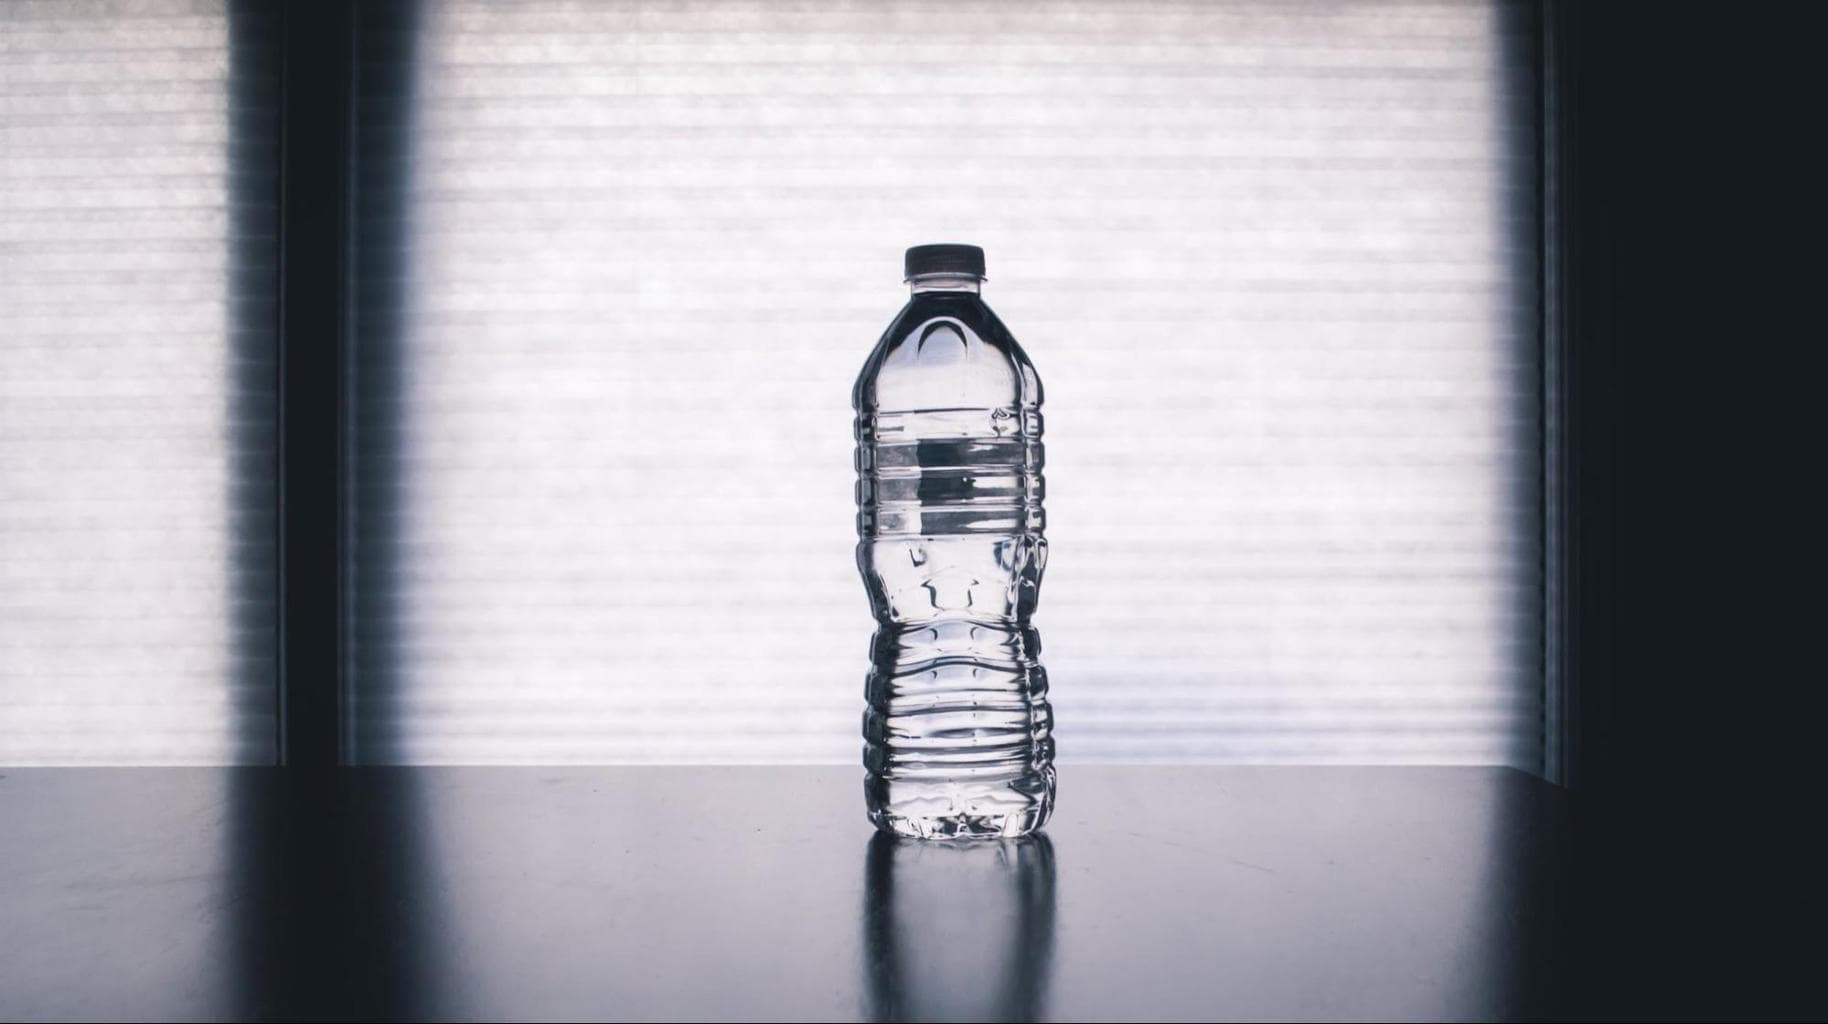 Take your own water bottle on the flight